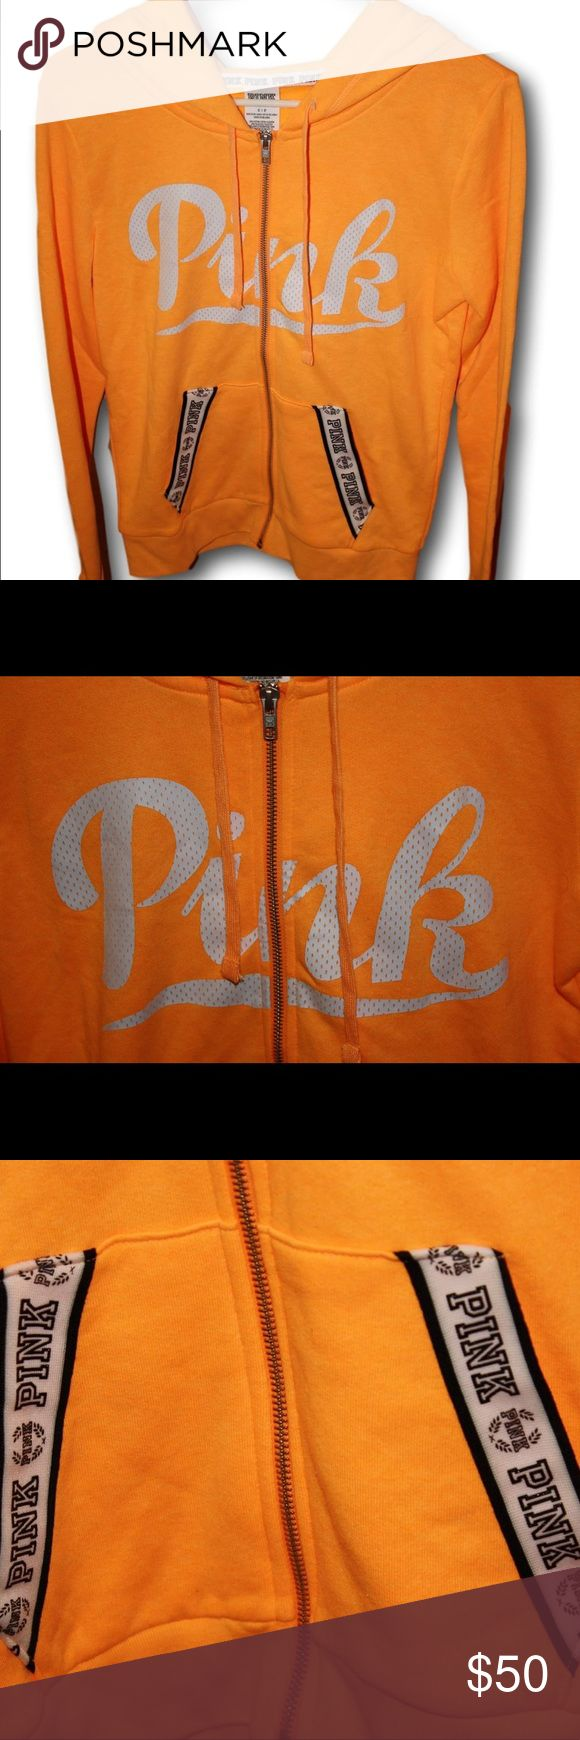 Victoria's Secret PINK Zip Up Hoodie Sweatshirt Women's size Small. This orange, black / white VS PINK logo hoodie is super cute and NWT! ☀️  TAGS: VS PINK, Love Pink, Victoria Secret Pink, Pink, Hoodie, Full Zip Up, Hooded, Sweatshirt, Orange, White, Black, LOGO PINK Victoria's Secret Tops Sweatshirts & Hoodies